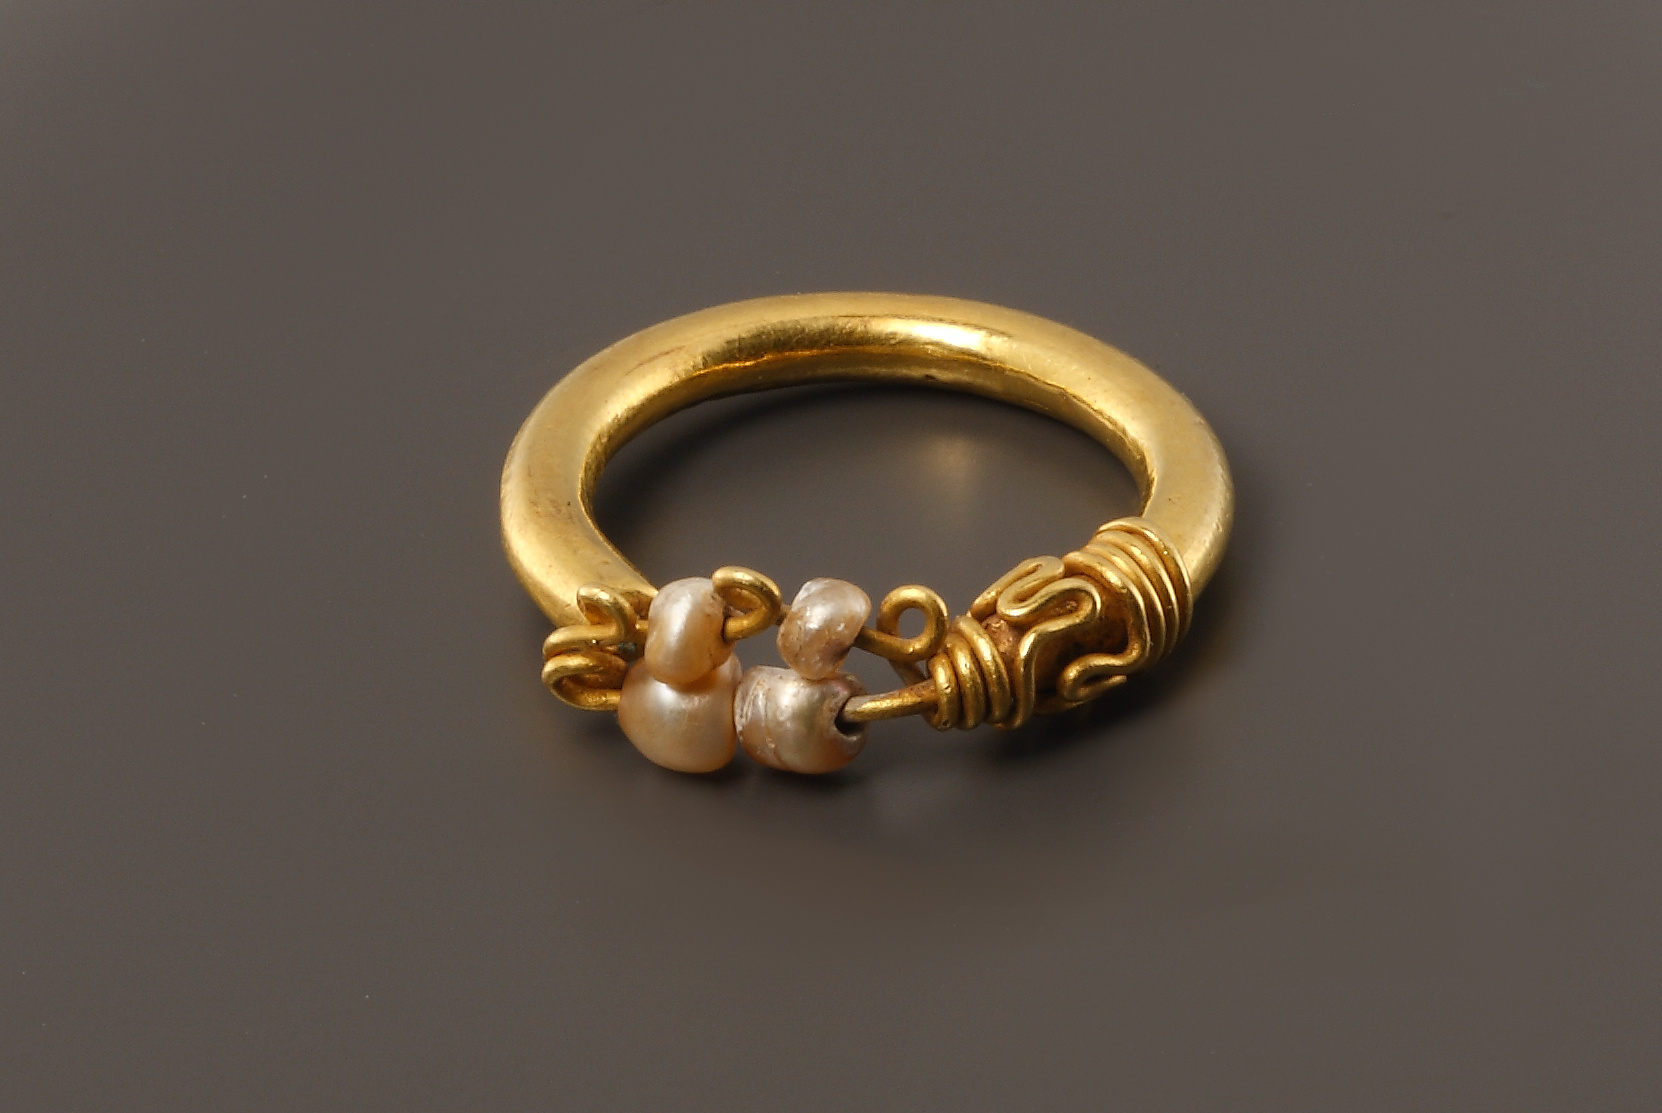 Lot 42 - A Gold Ring